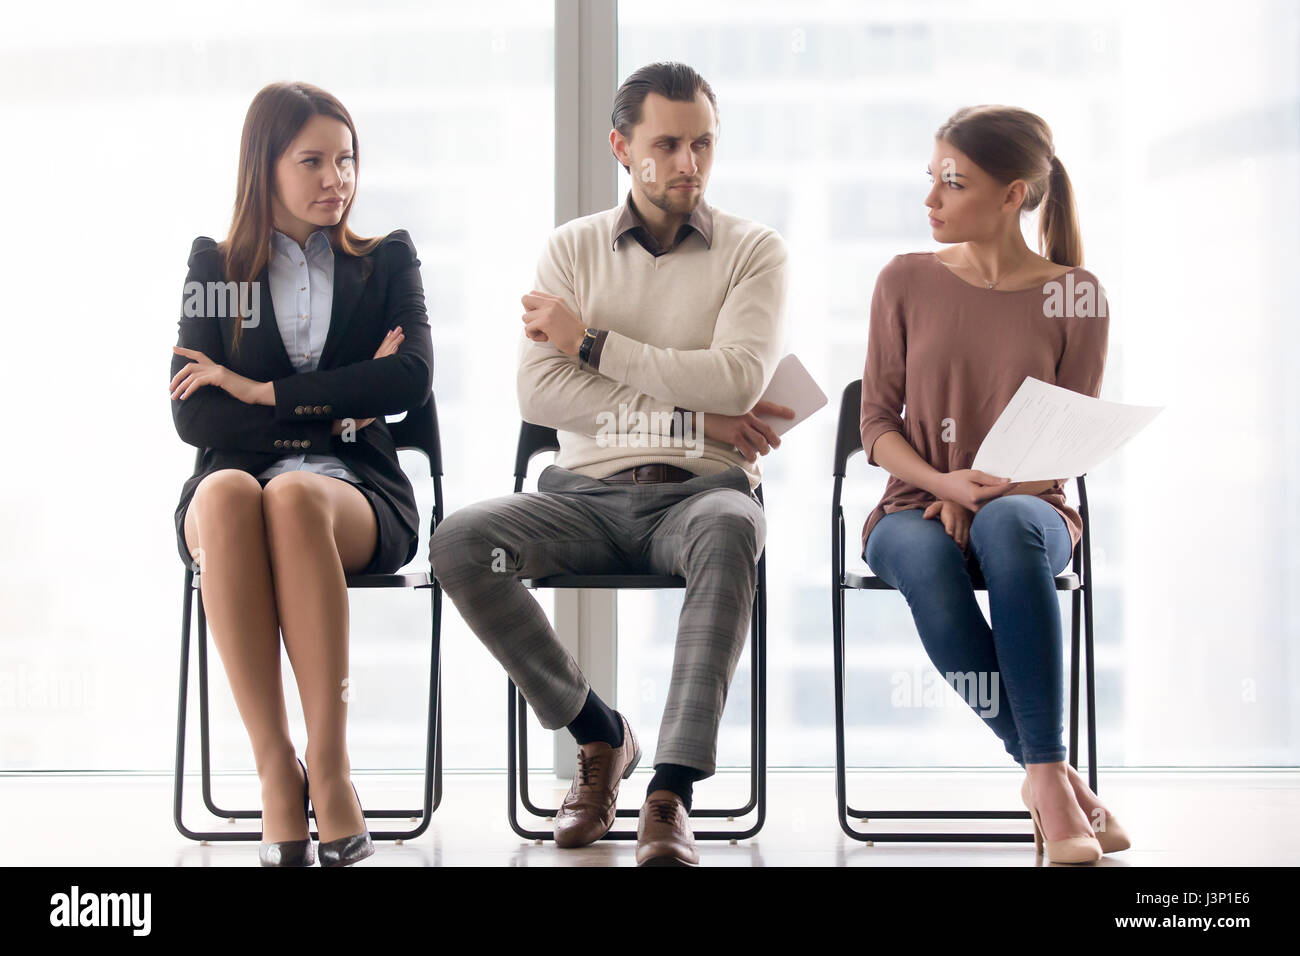 Job seekers compete for position, rivalry and competition betwee - Stock Image